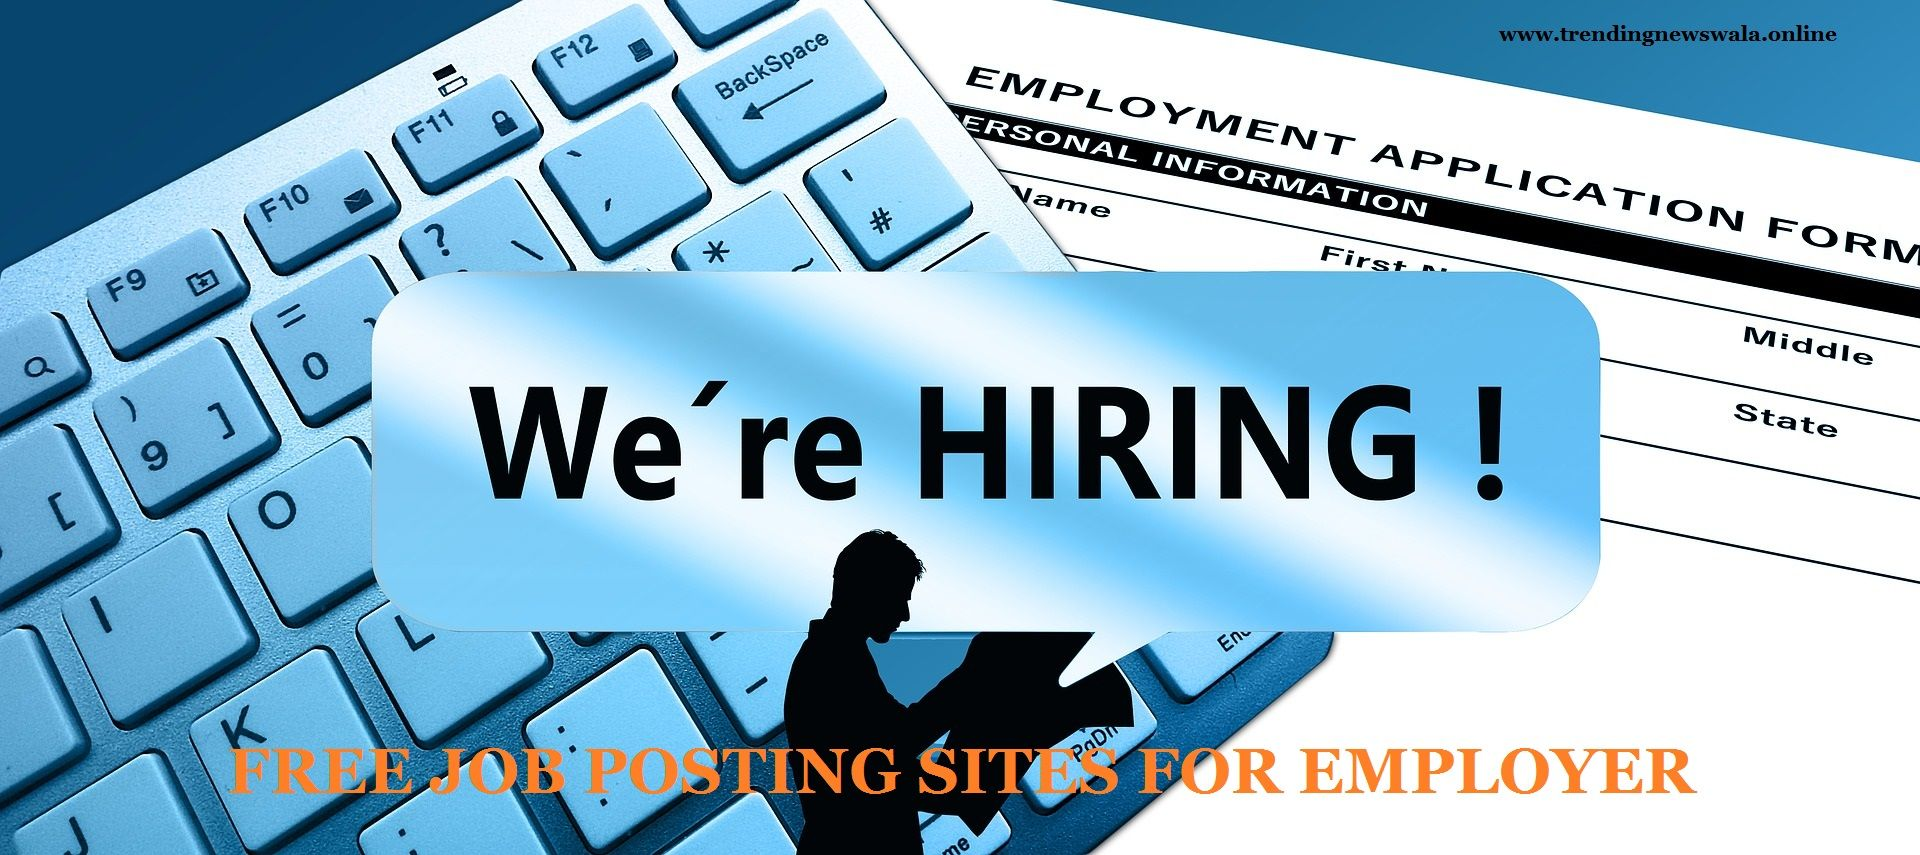 Top Free Job Posting Website For Employers